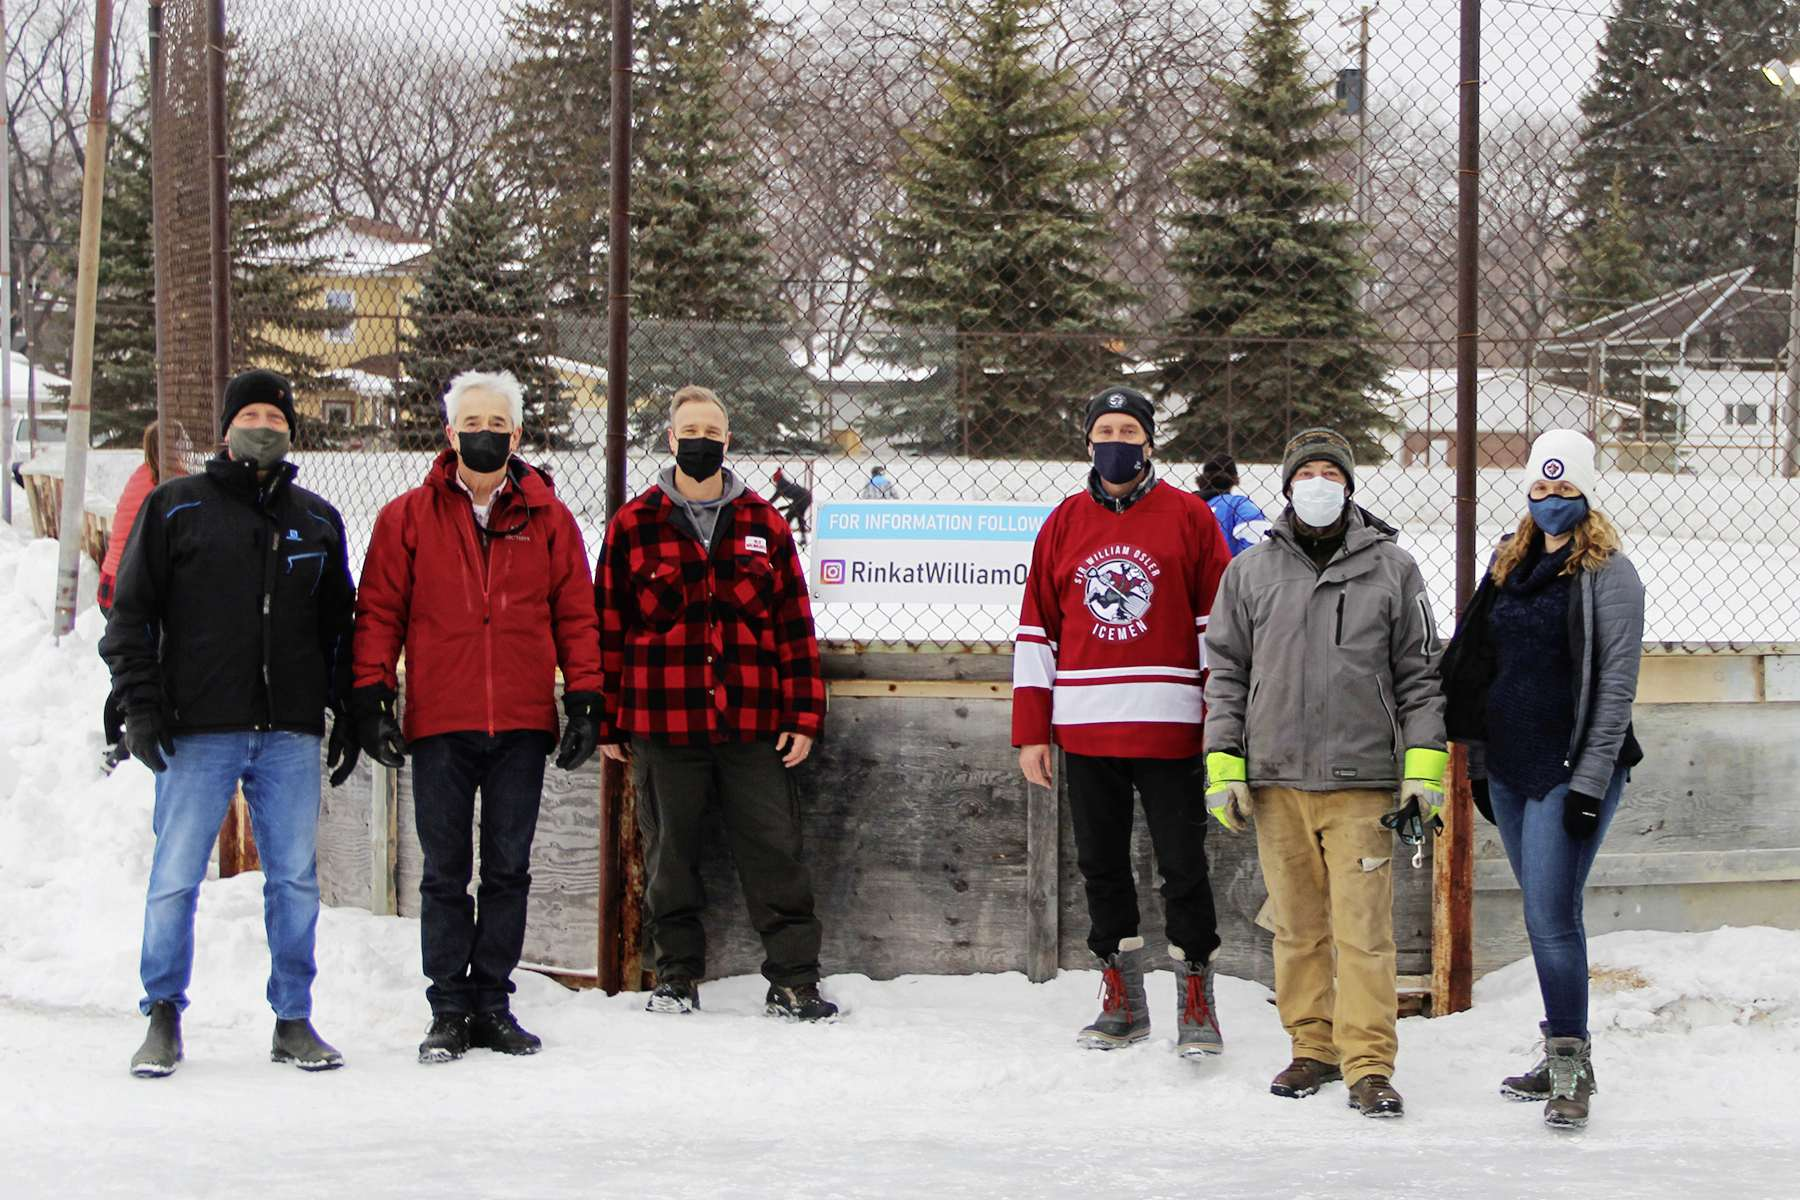 River Heights councillor John Orlikow (far left) is pictured here with some of the volunteers who maintain the community rink at Sir William Osler Park, including Karen Windatt, Greg Mitchell, Jim Hrabiuk, Colin Smith and Tom Hayward.